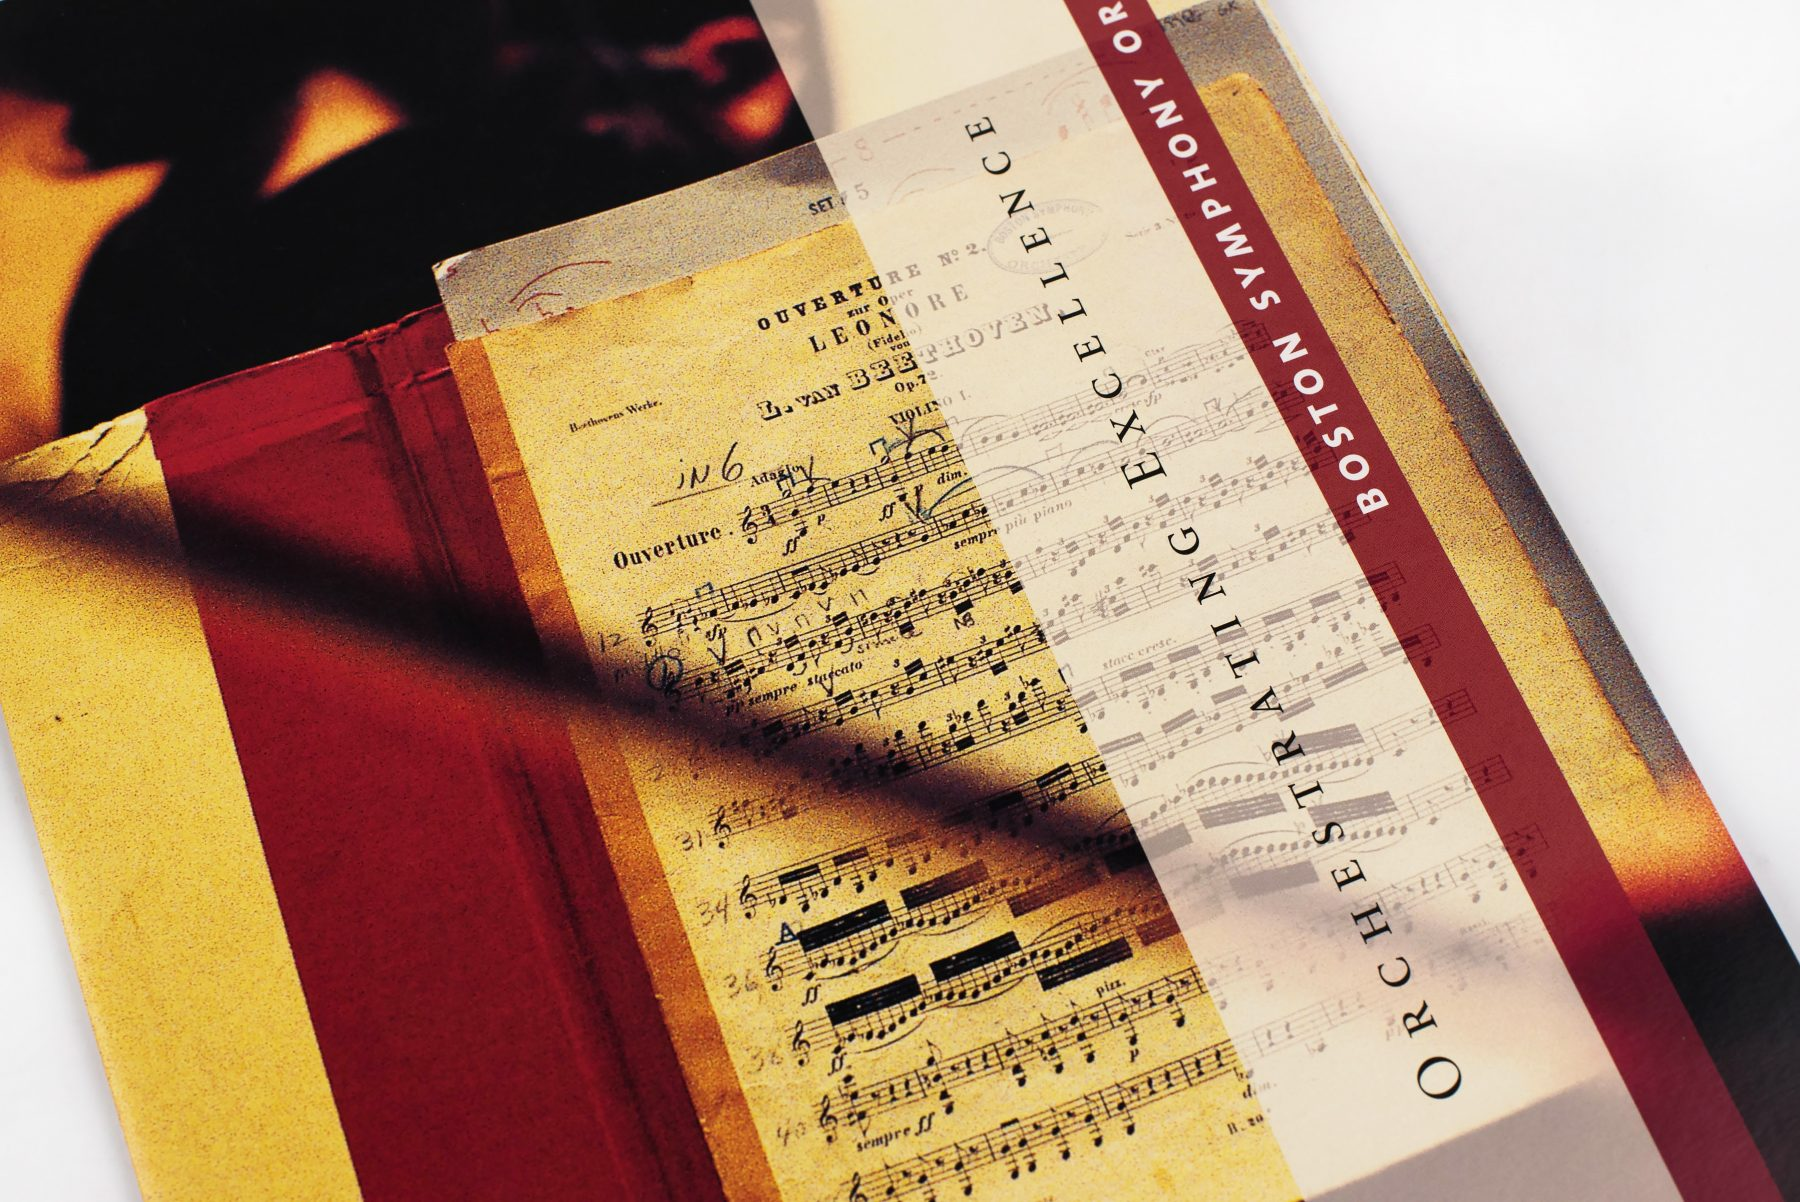 Boston Symphony Orchestra Corporate Sponsorship brochure cover up-close